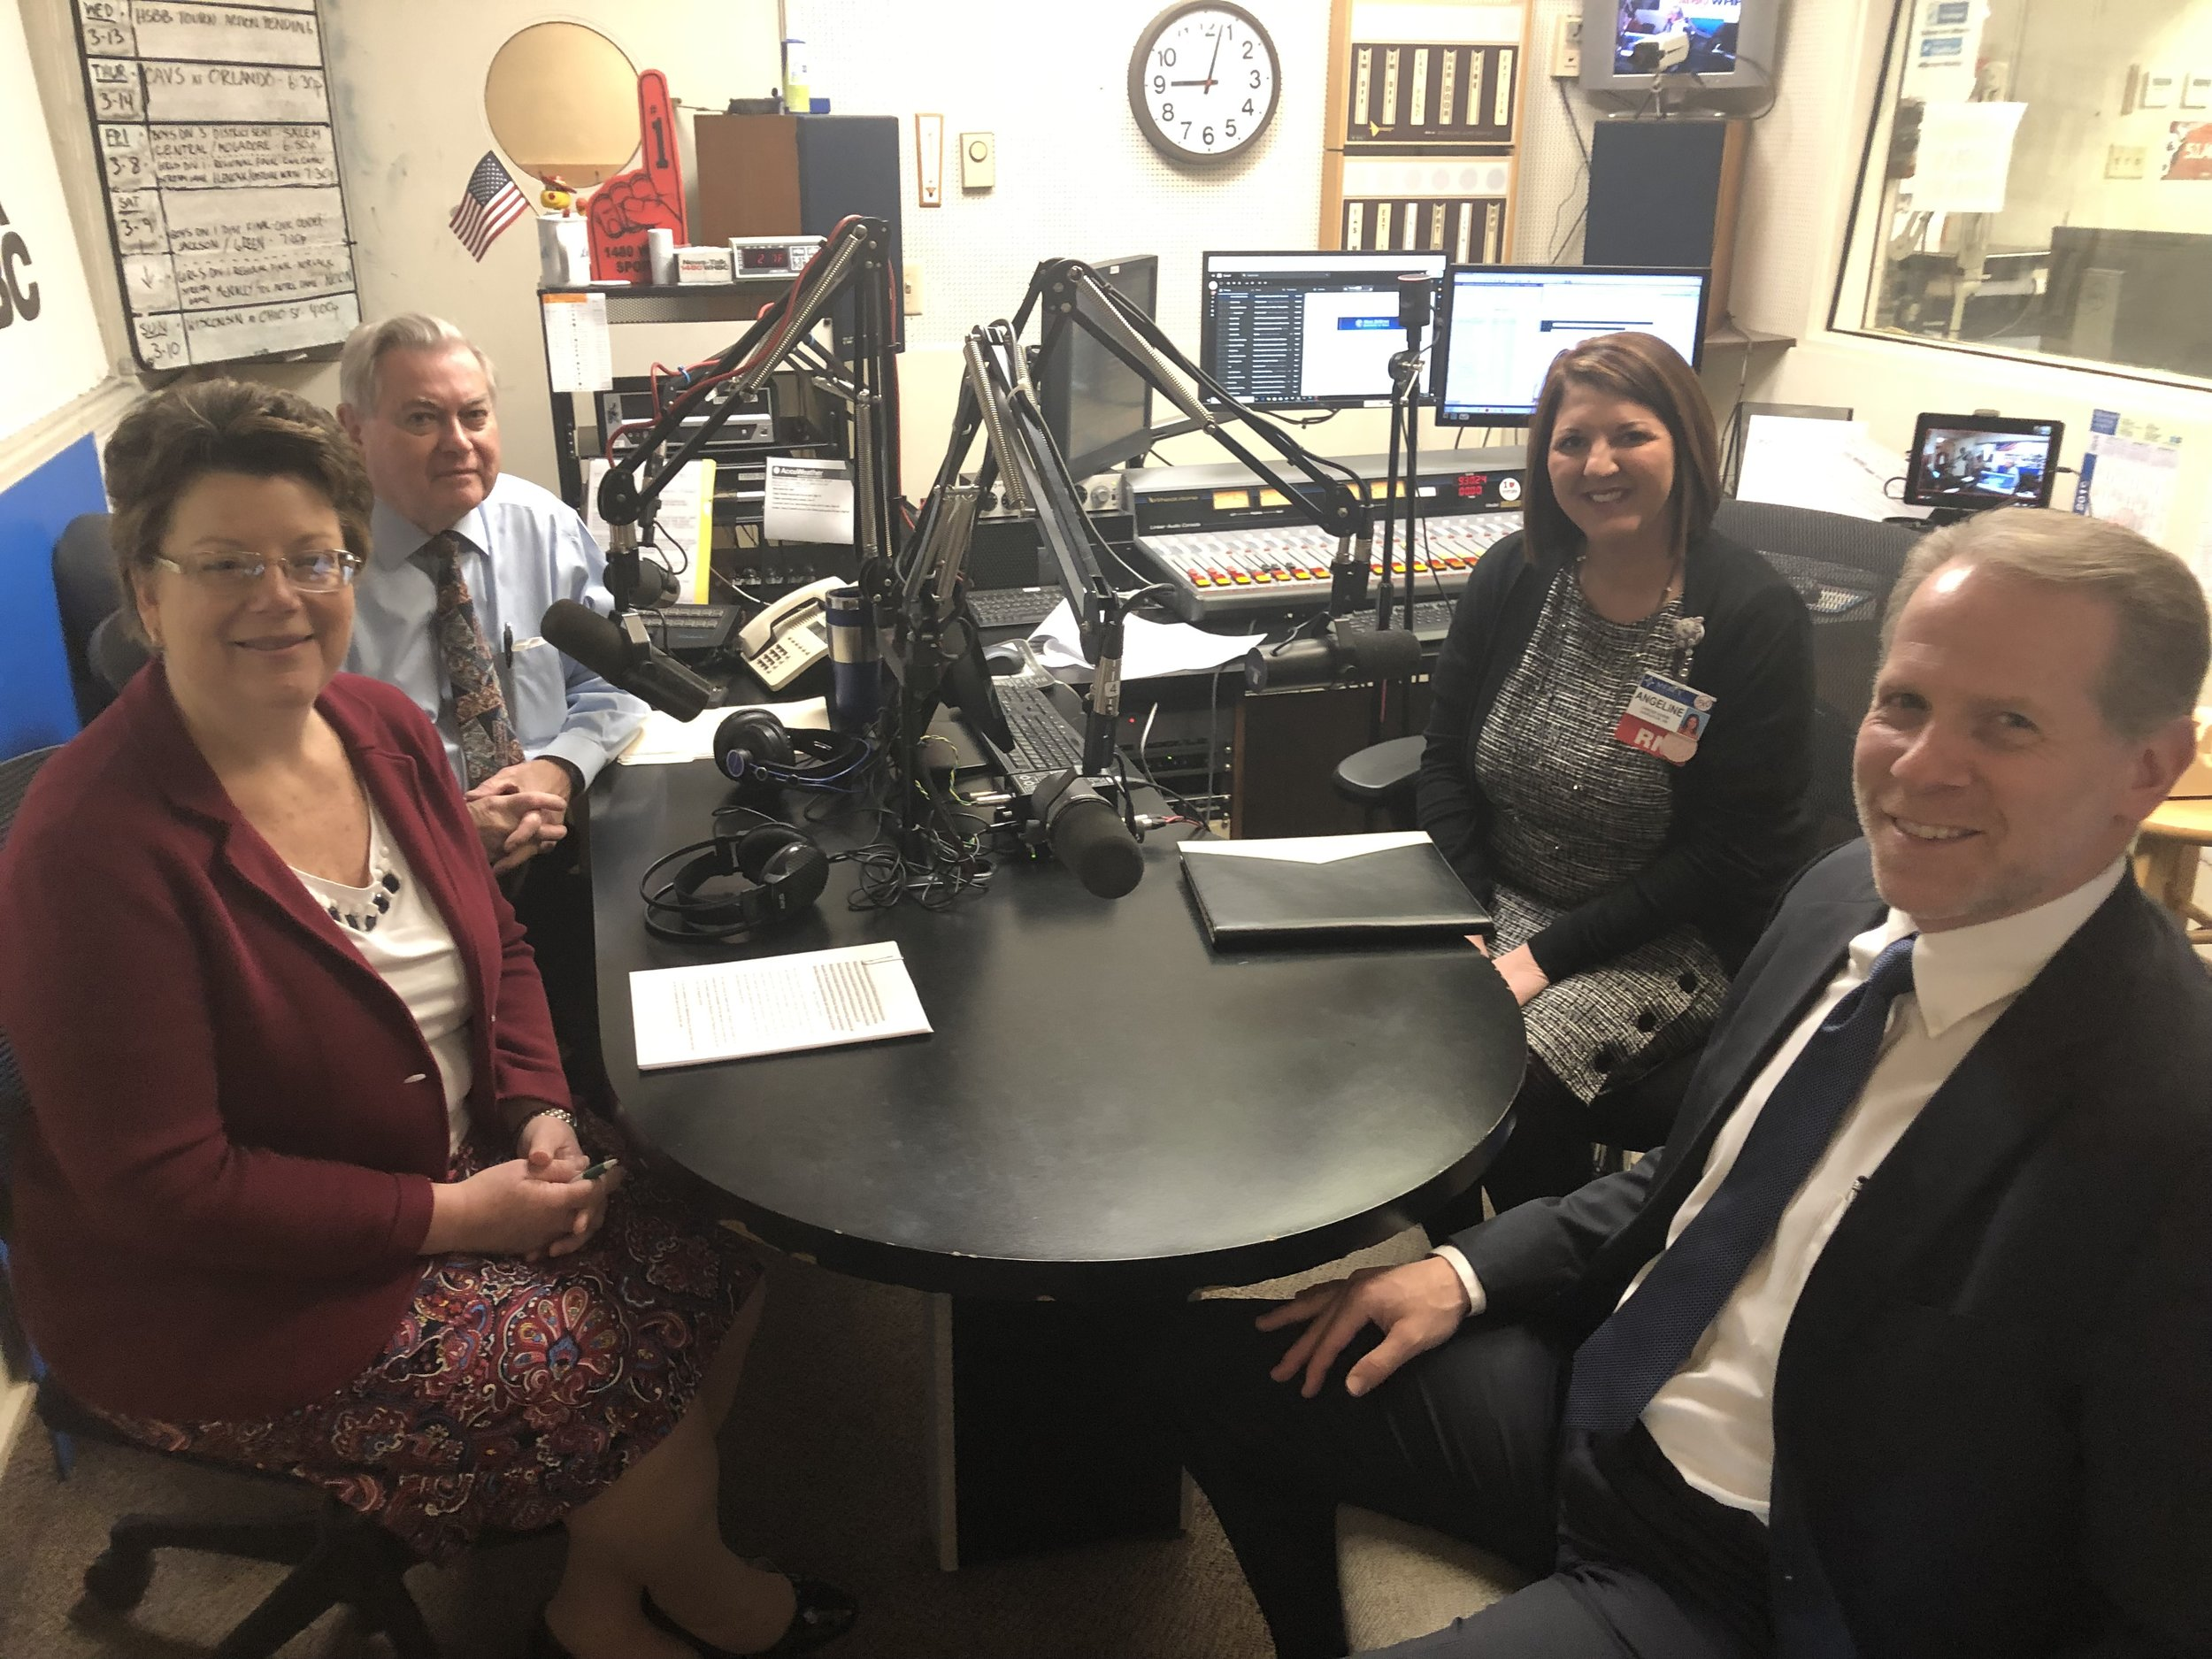 L-R: Medicine Center Pharmacy's Nancy Wharmby, executive vice president and Paul White, R. Ph., discuss colon cancer awareness and treatment with Mercy Medical Center's Angelina Barbato, cancer nurse navigator and Dr. Russell Ramey.